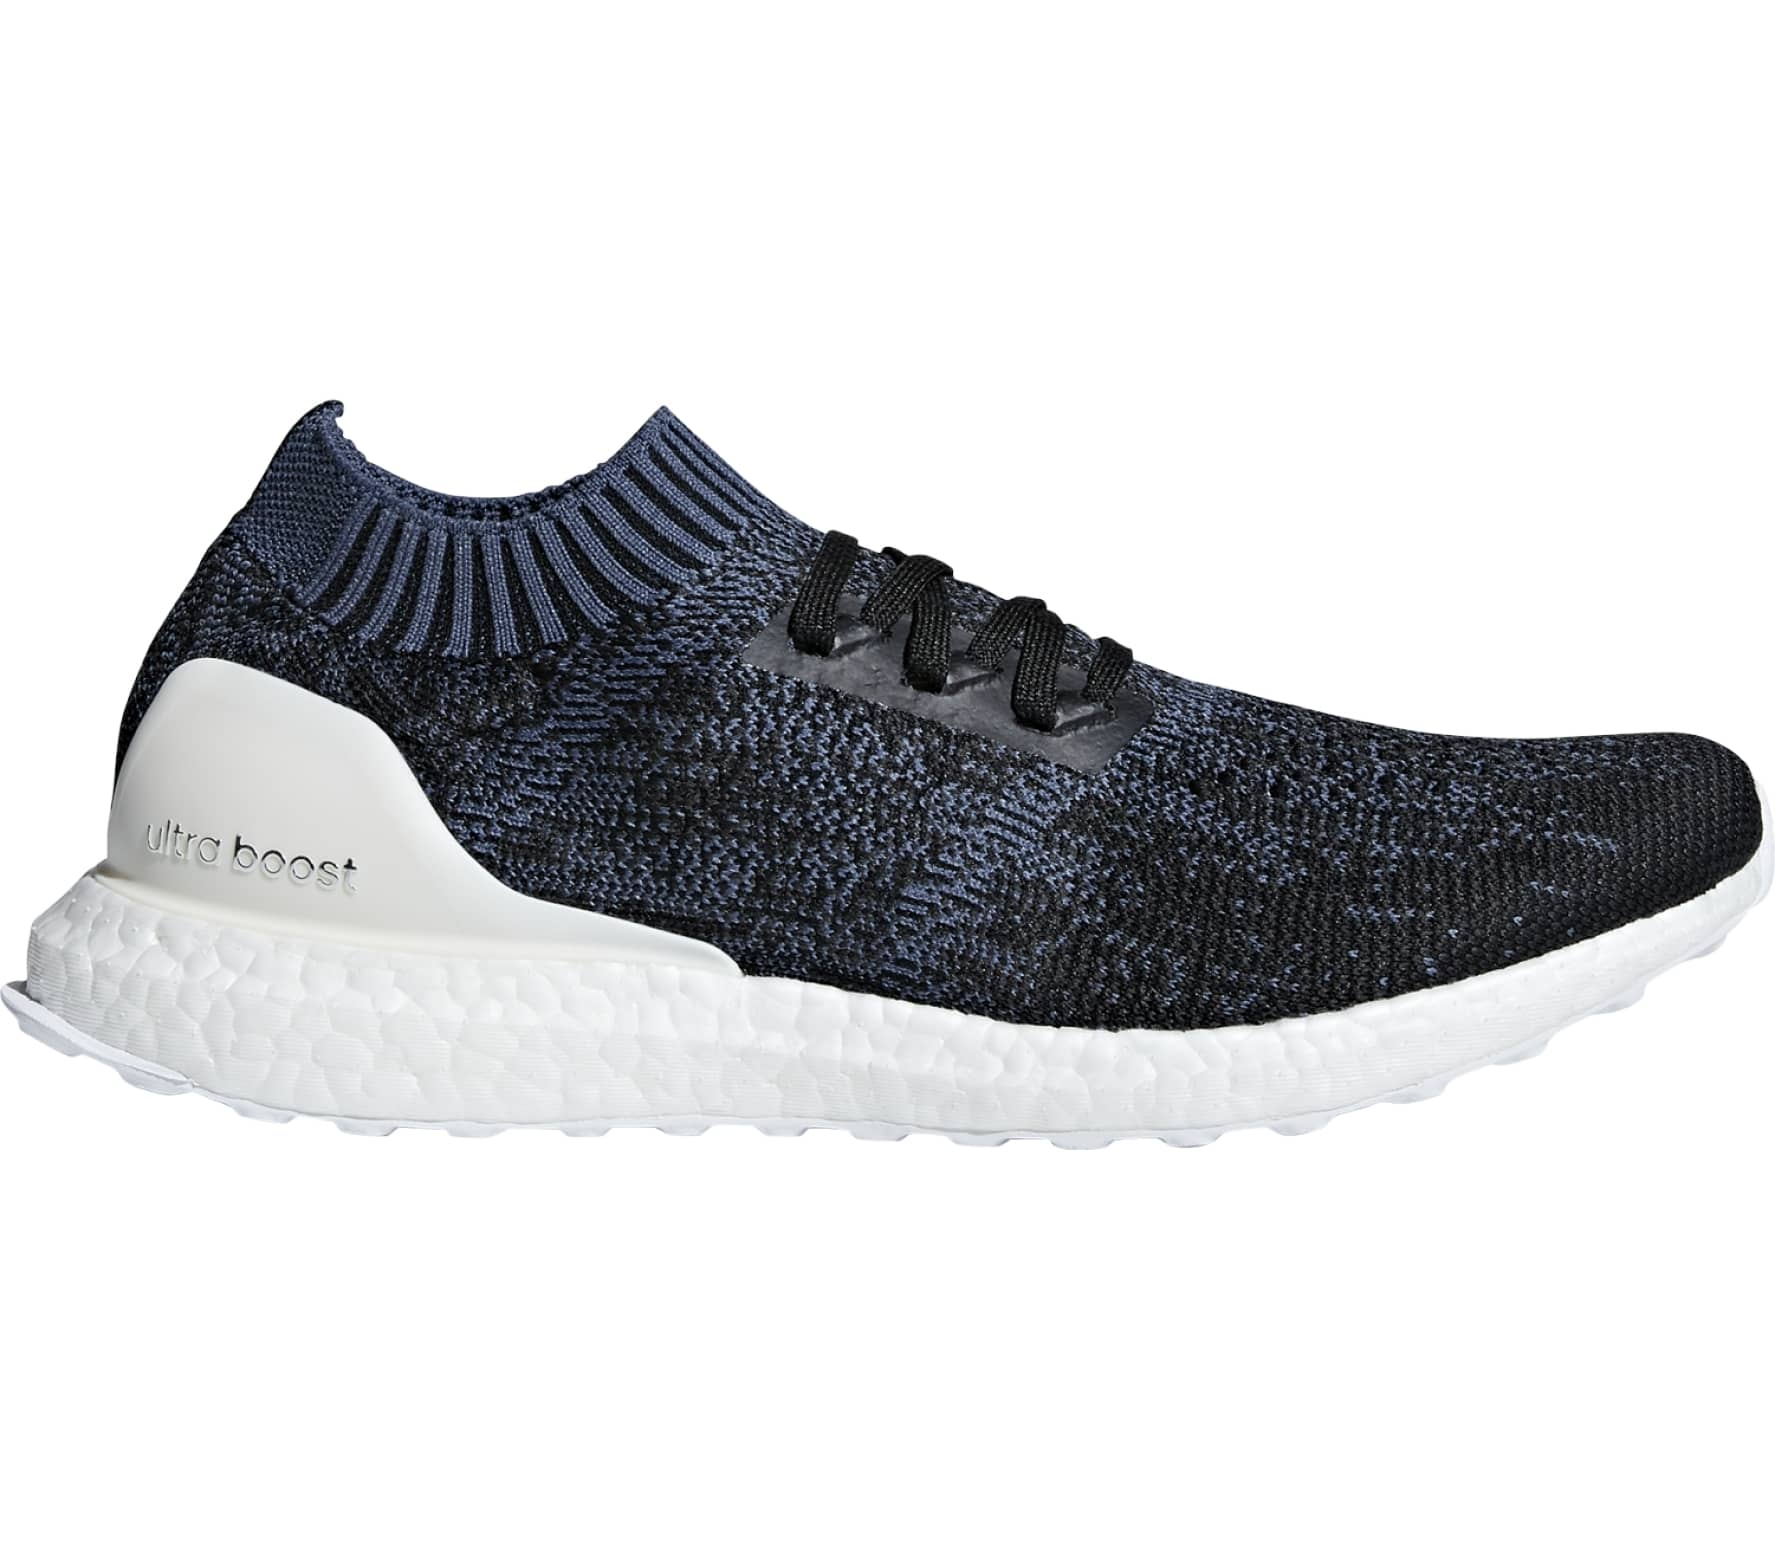 1d63ef5c5 Adidas - Ultra Boost Uncaged men s running shoes (black blue) - buy ...